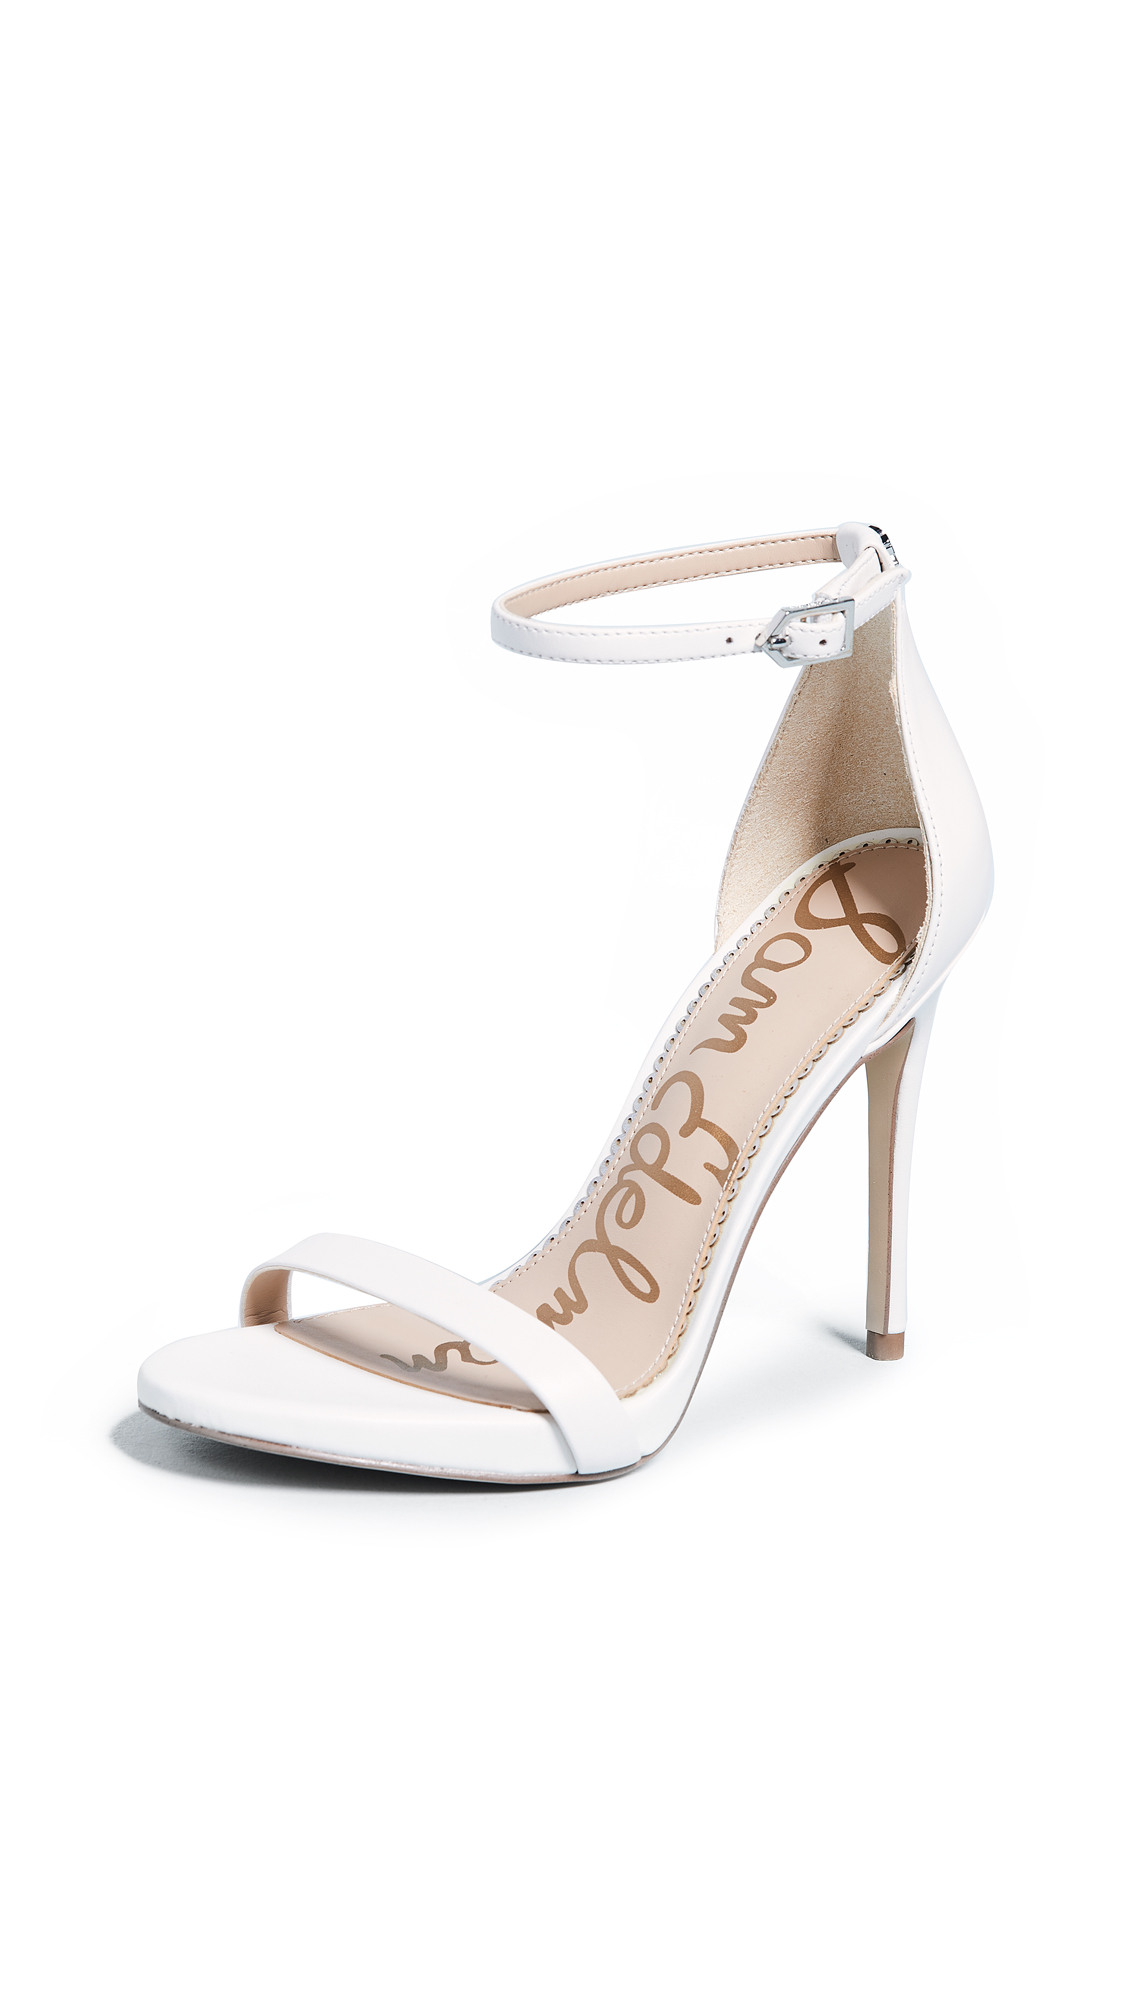 Sam Edelman Ariella Sandals - Bright White